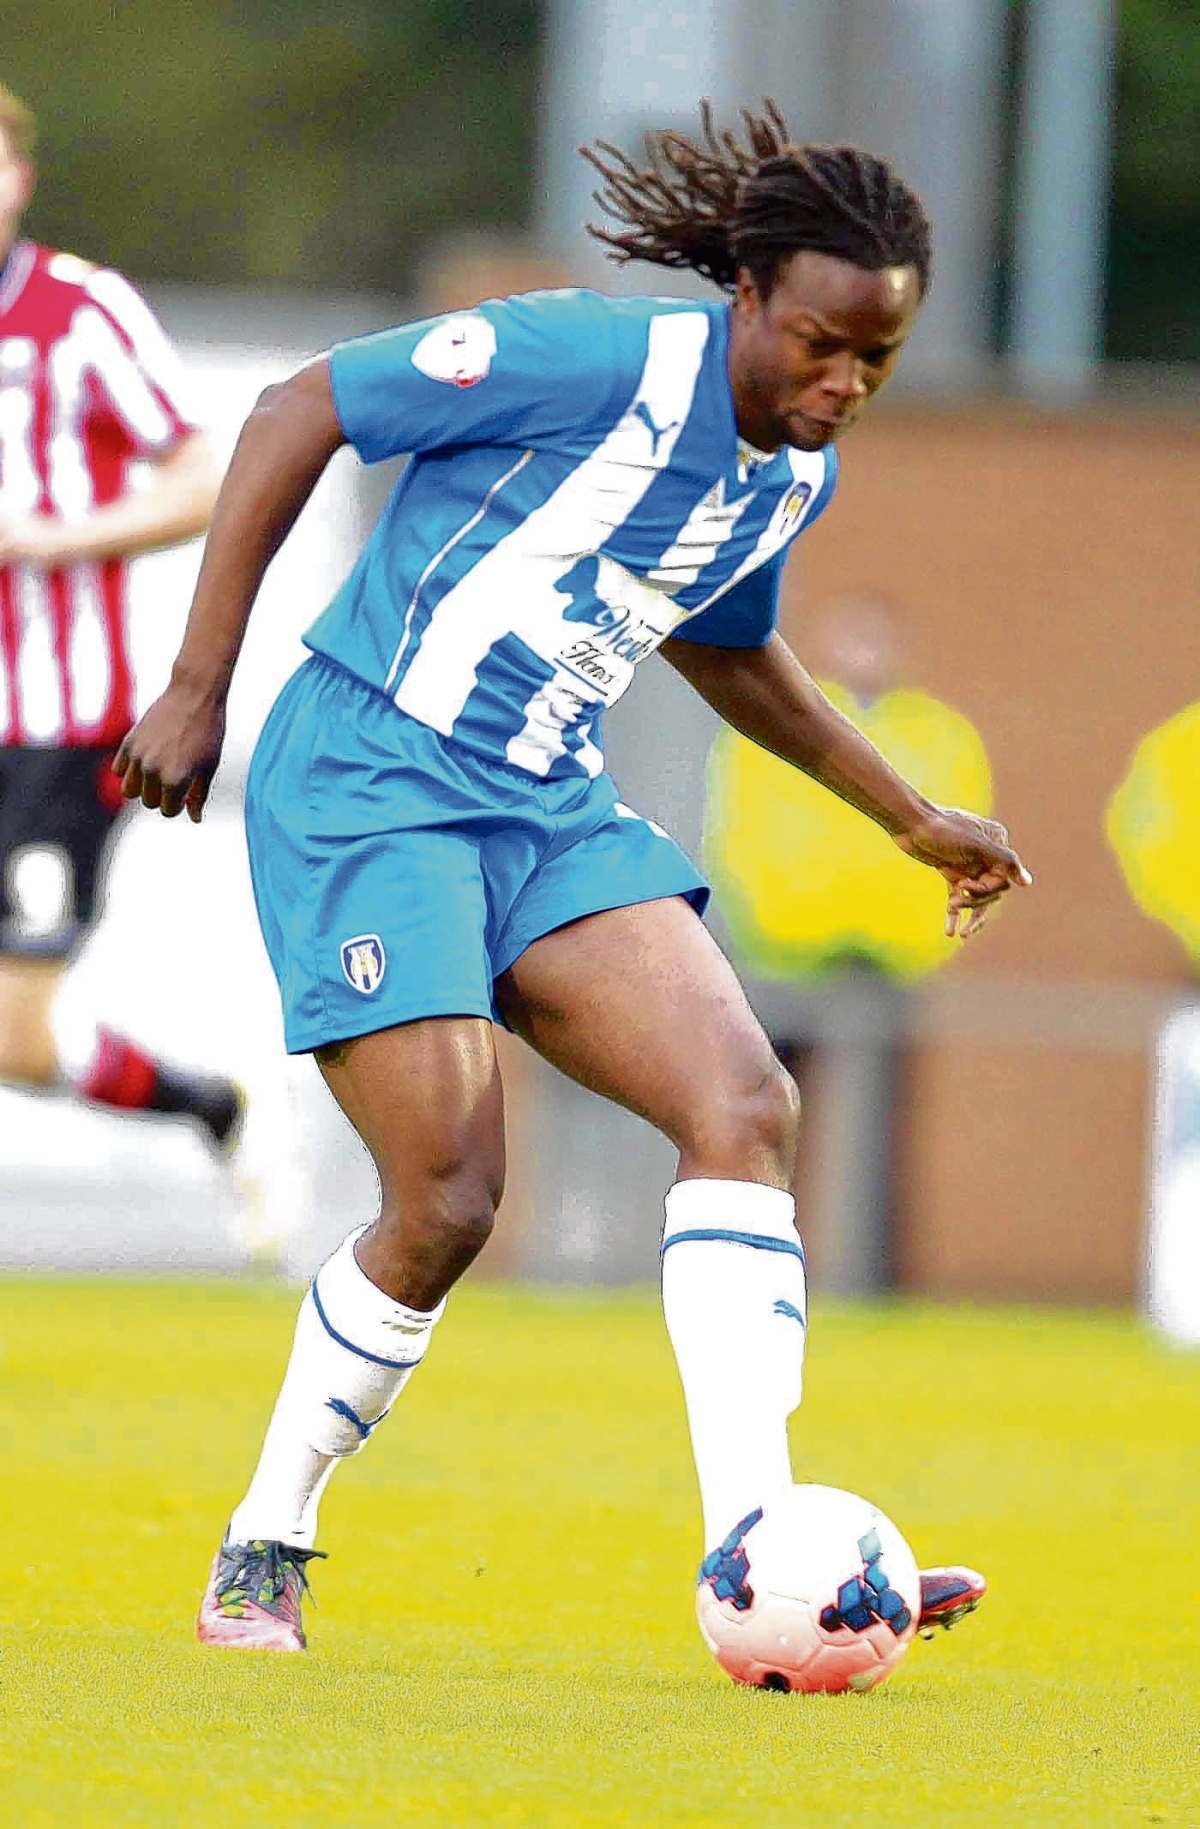 Ready for action - Marcus Bean is keen to get back on the pitch and help Colchester United continue their good form in League One. Picture: STEVE BRADING (CO86650-05)